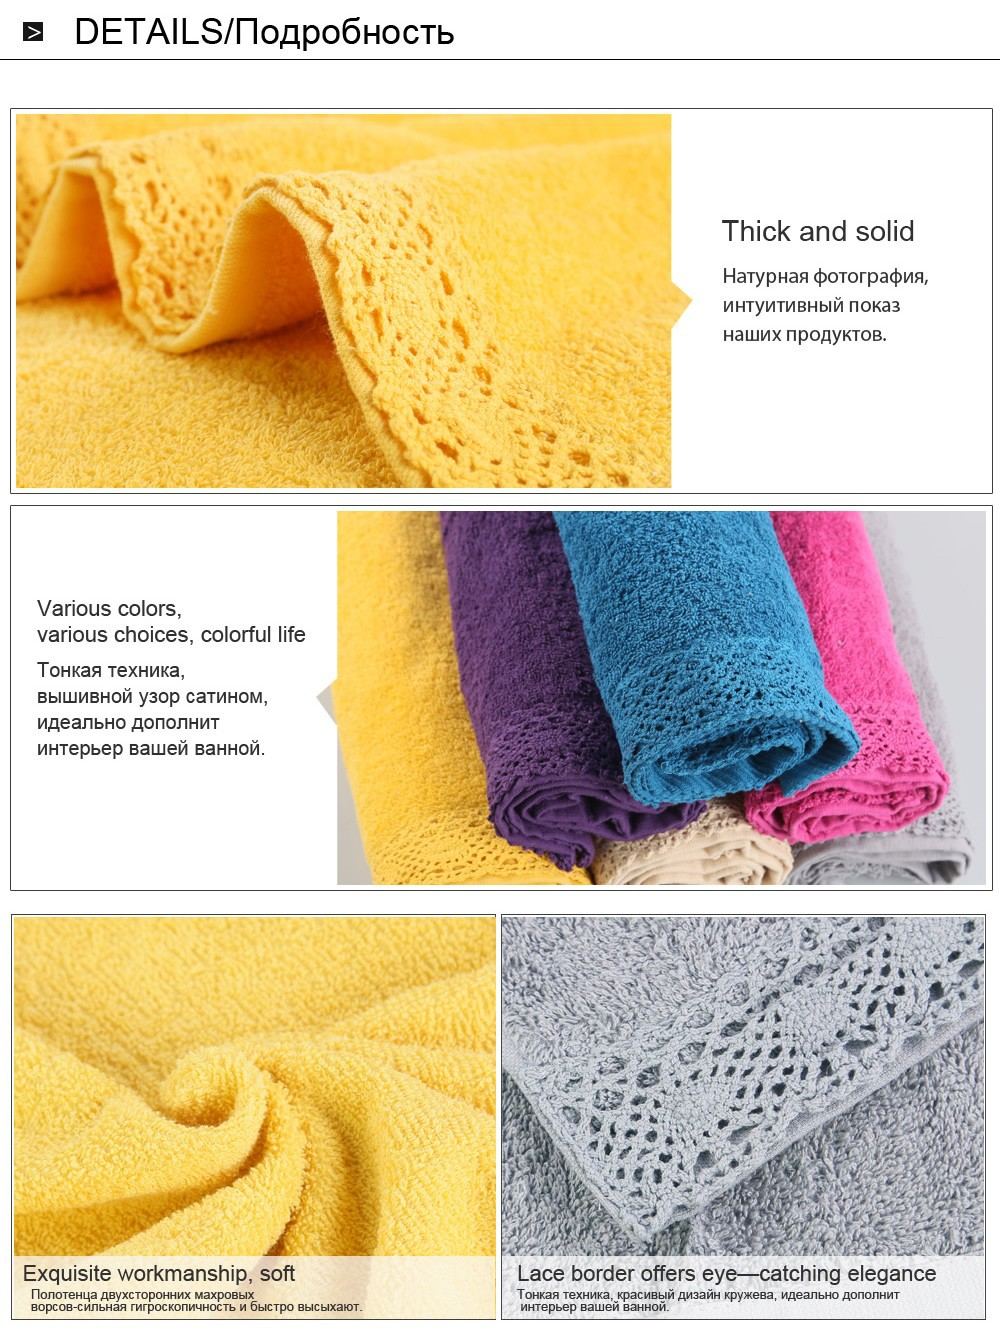 3pcs/lot Towel Set Lace Border Embroidery 100% Cotton Handkerchief+Face Cloth+Bath Towels Wholesale Terry For Adults